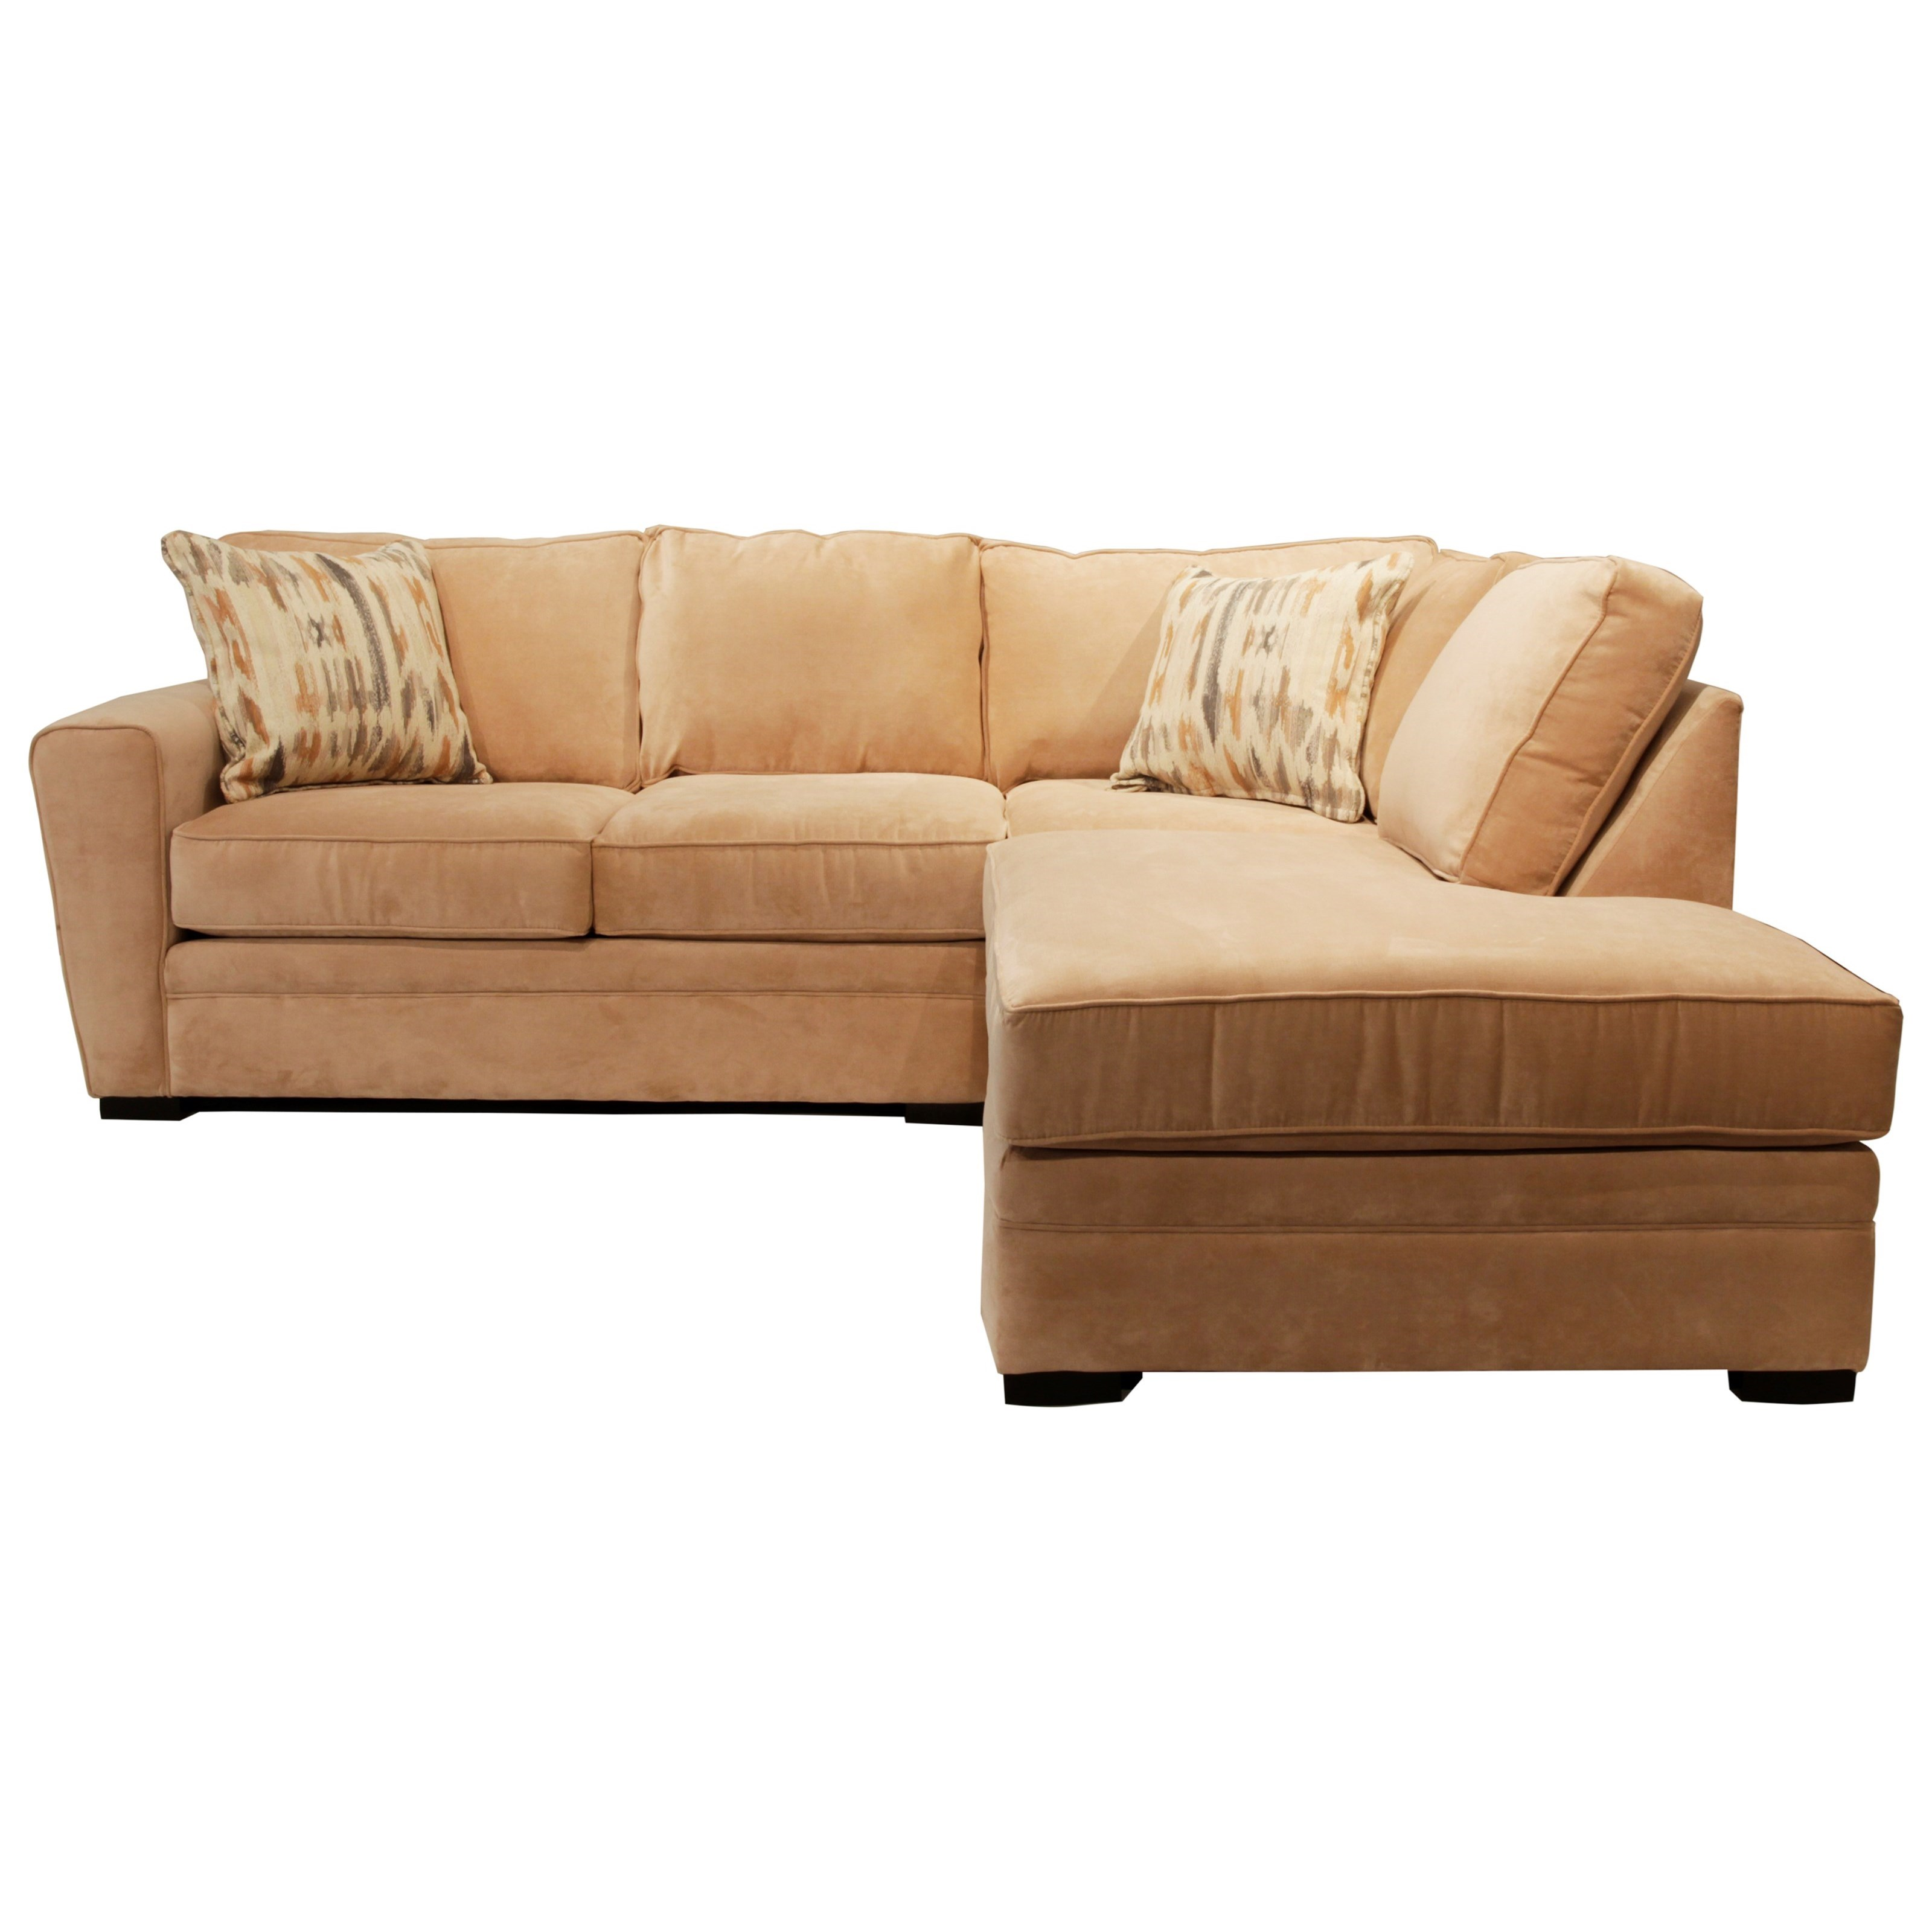 Jonathan Louis Choices - Artemis Sectional - Item Number: 413-25L+28R-Gypsy Blush